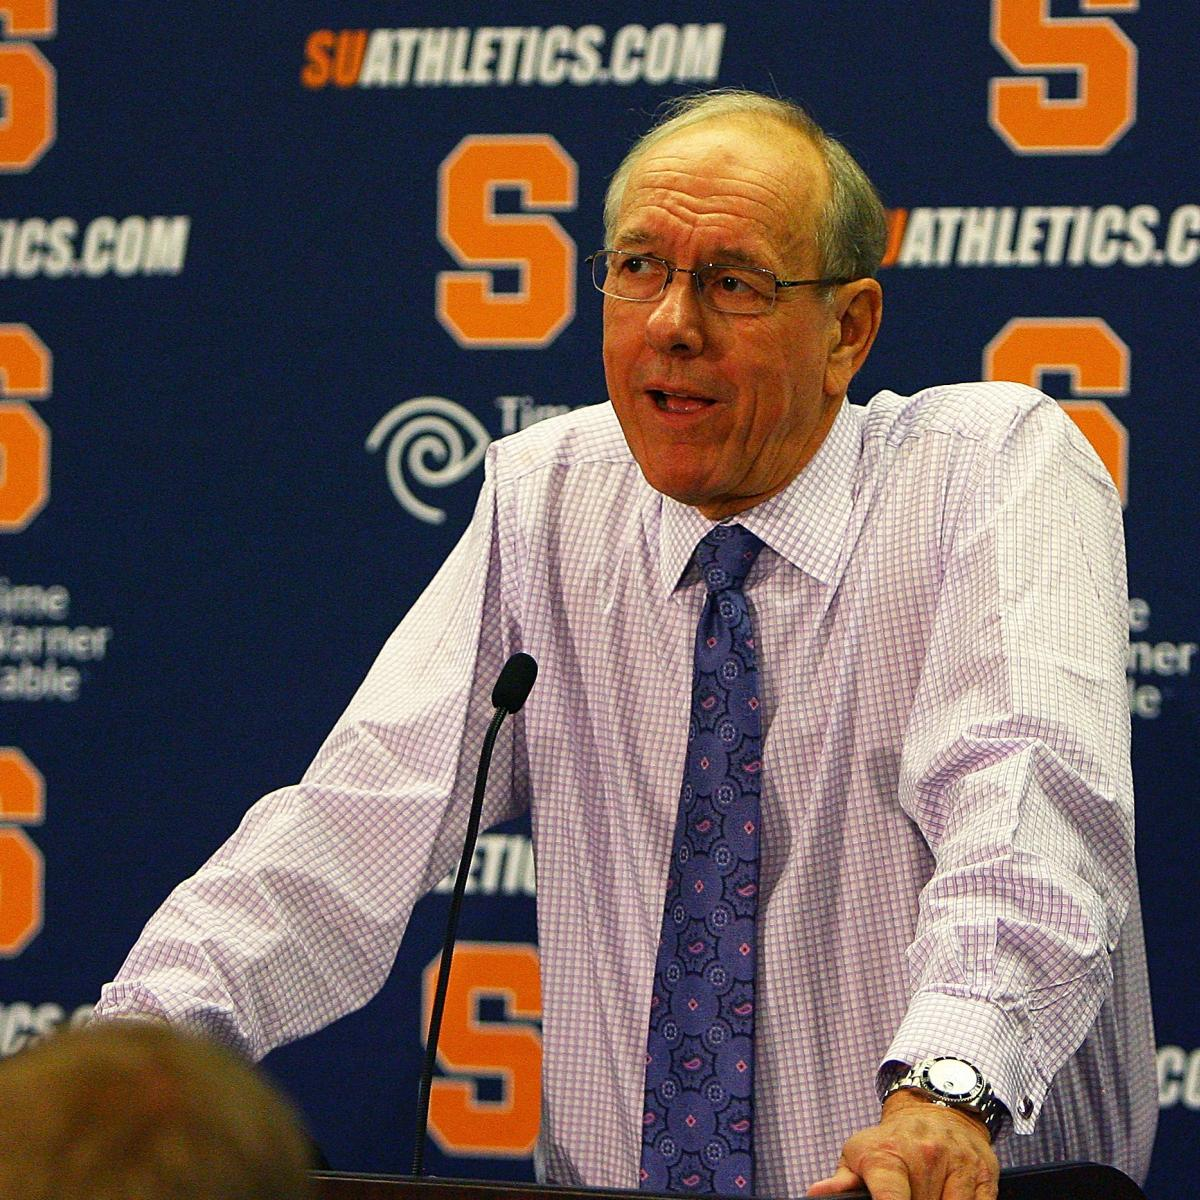 Syracuse Basketball: What To Expect From 2013 Recruit